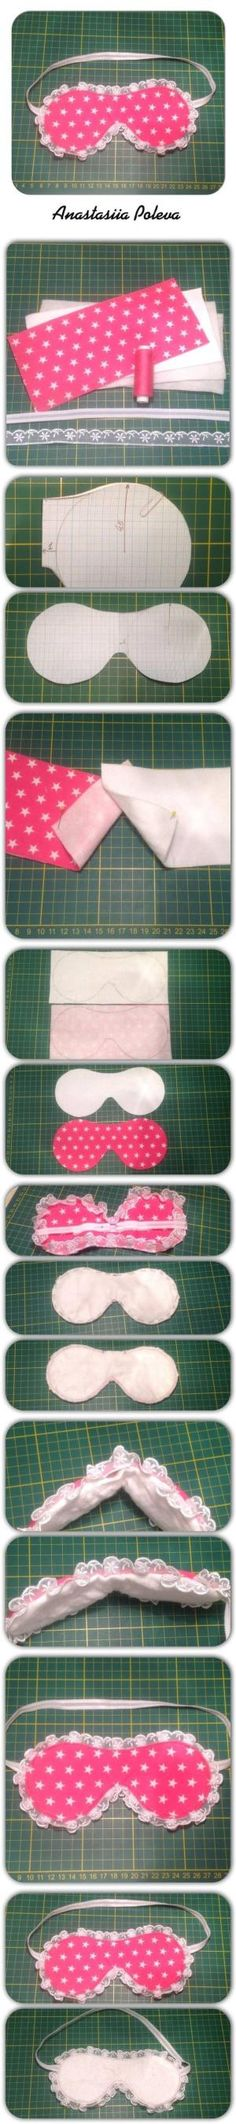 DIY Sleeping Mask DIY Sleeping Mask by diyforever